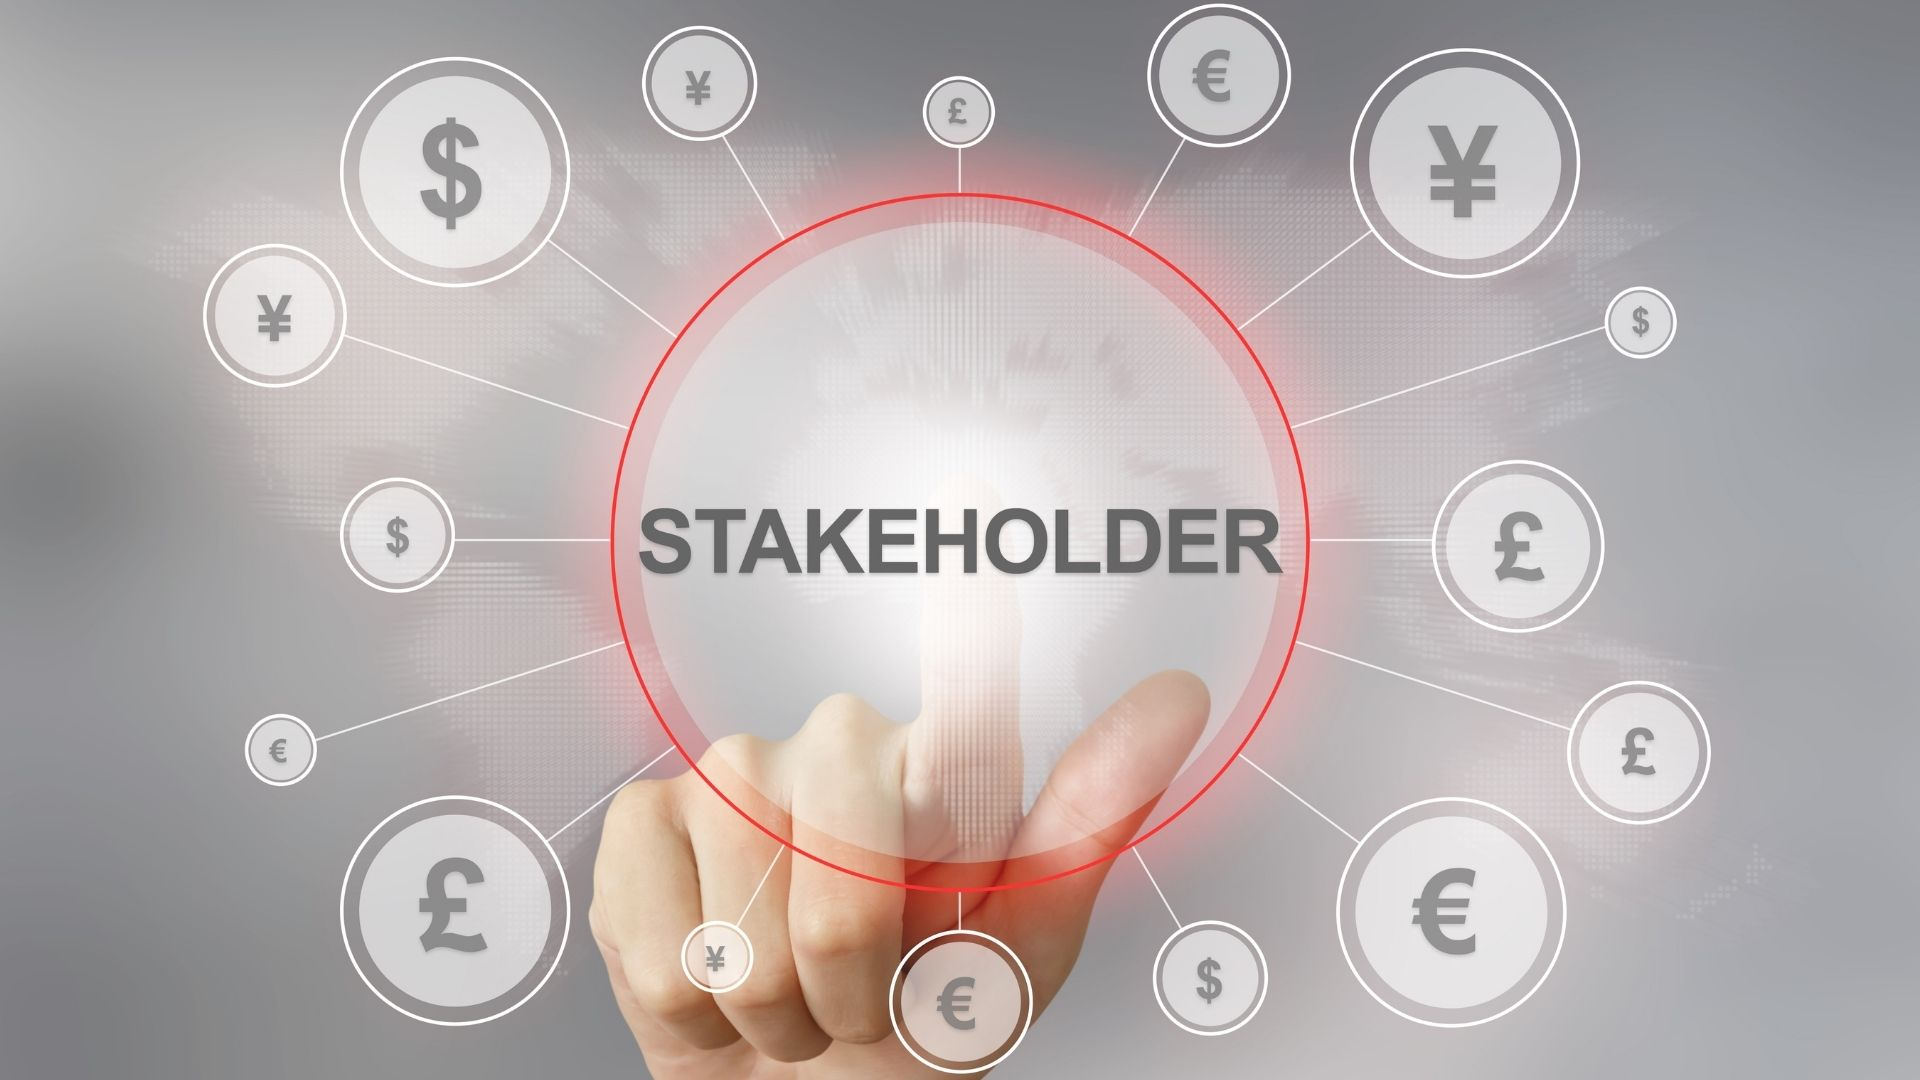 Can Covid-19 provide opportunities to change stakeholder relationships for good? 41